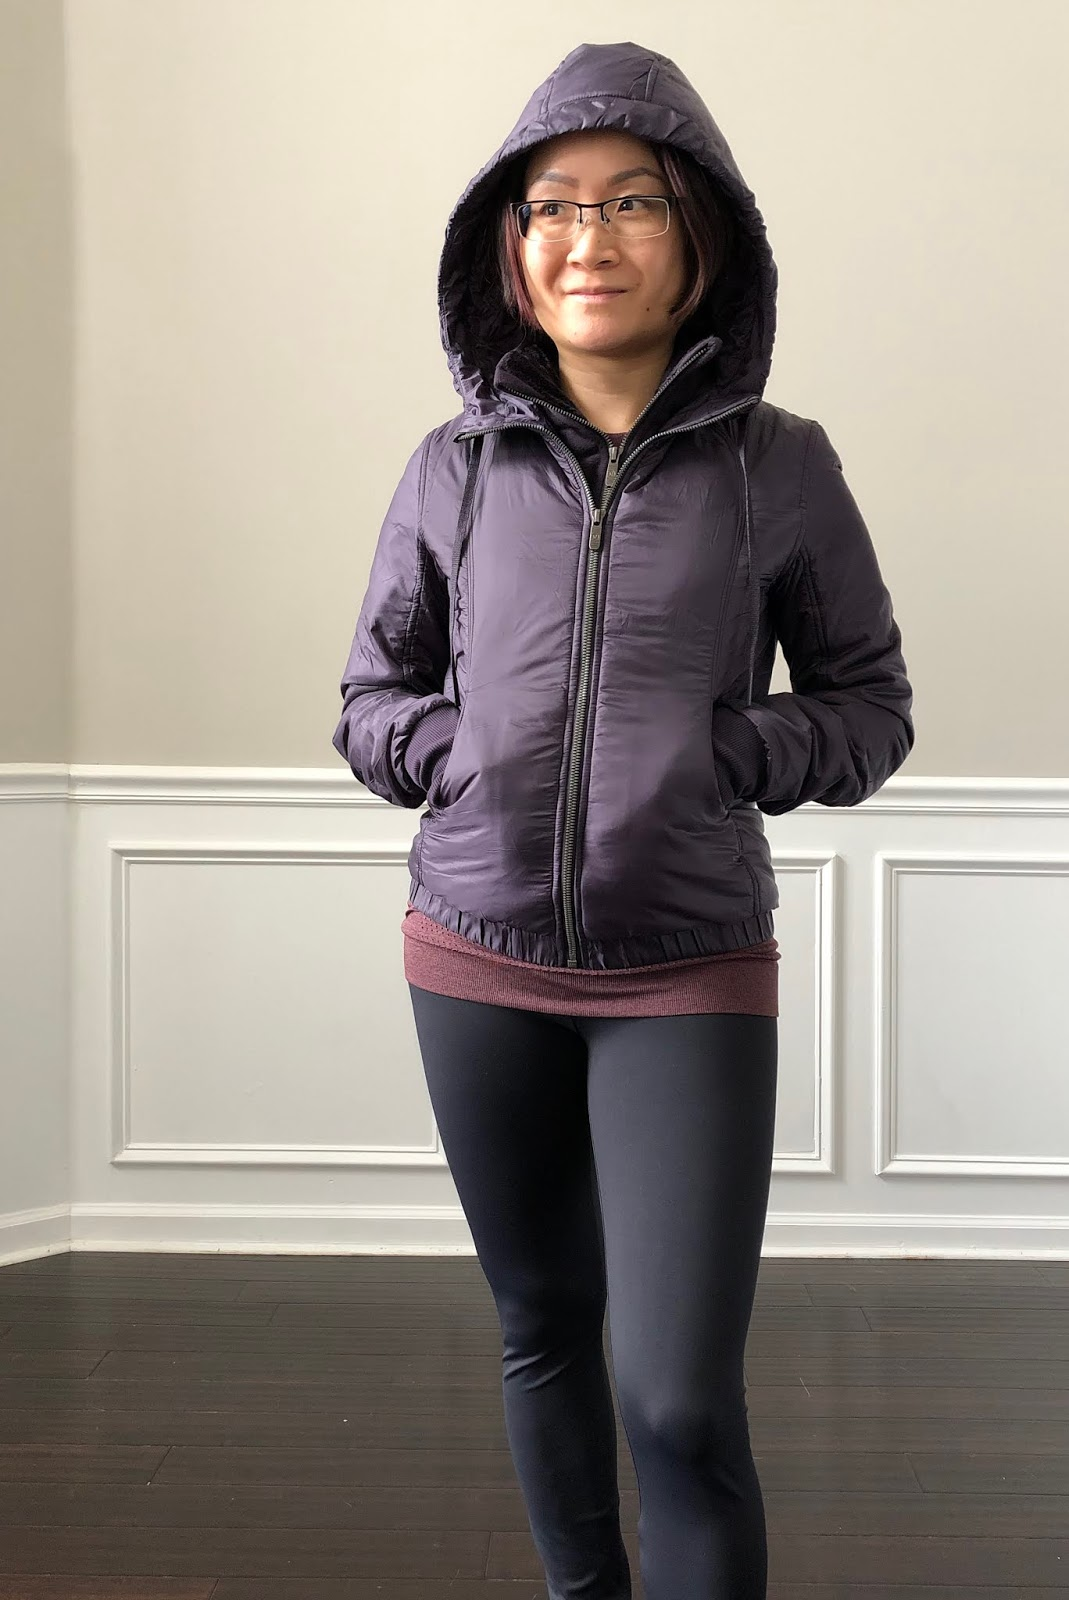 707463dff3d Happy Friday everyone! I can t believe it s already eight days into March.  Today I have a review of the Glyde Scuba Hoodie that I purchased last month  when ...